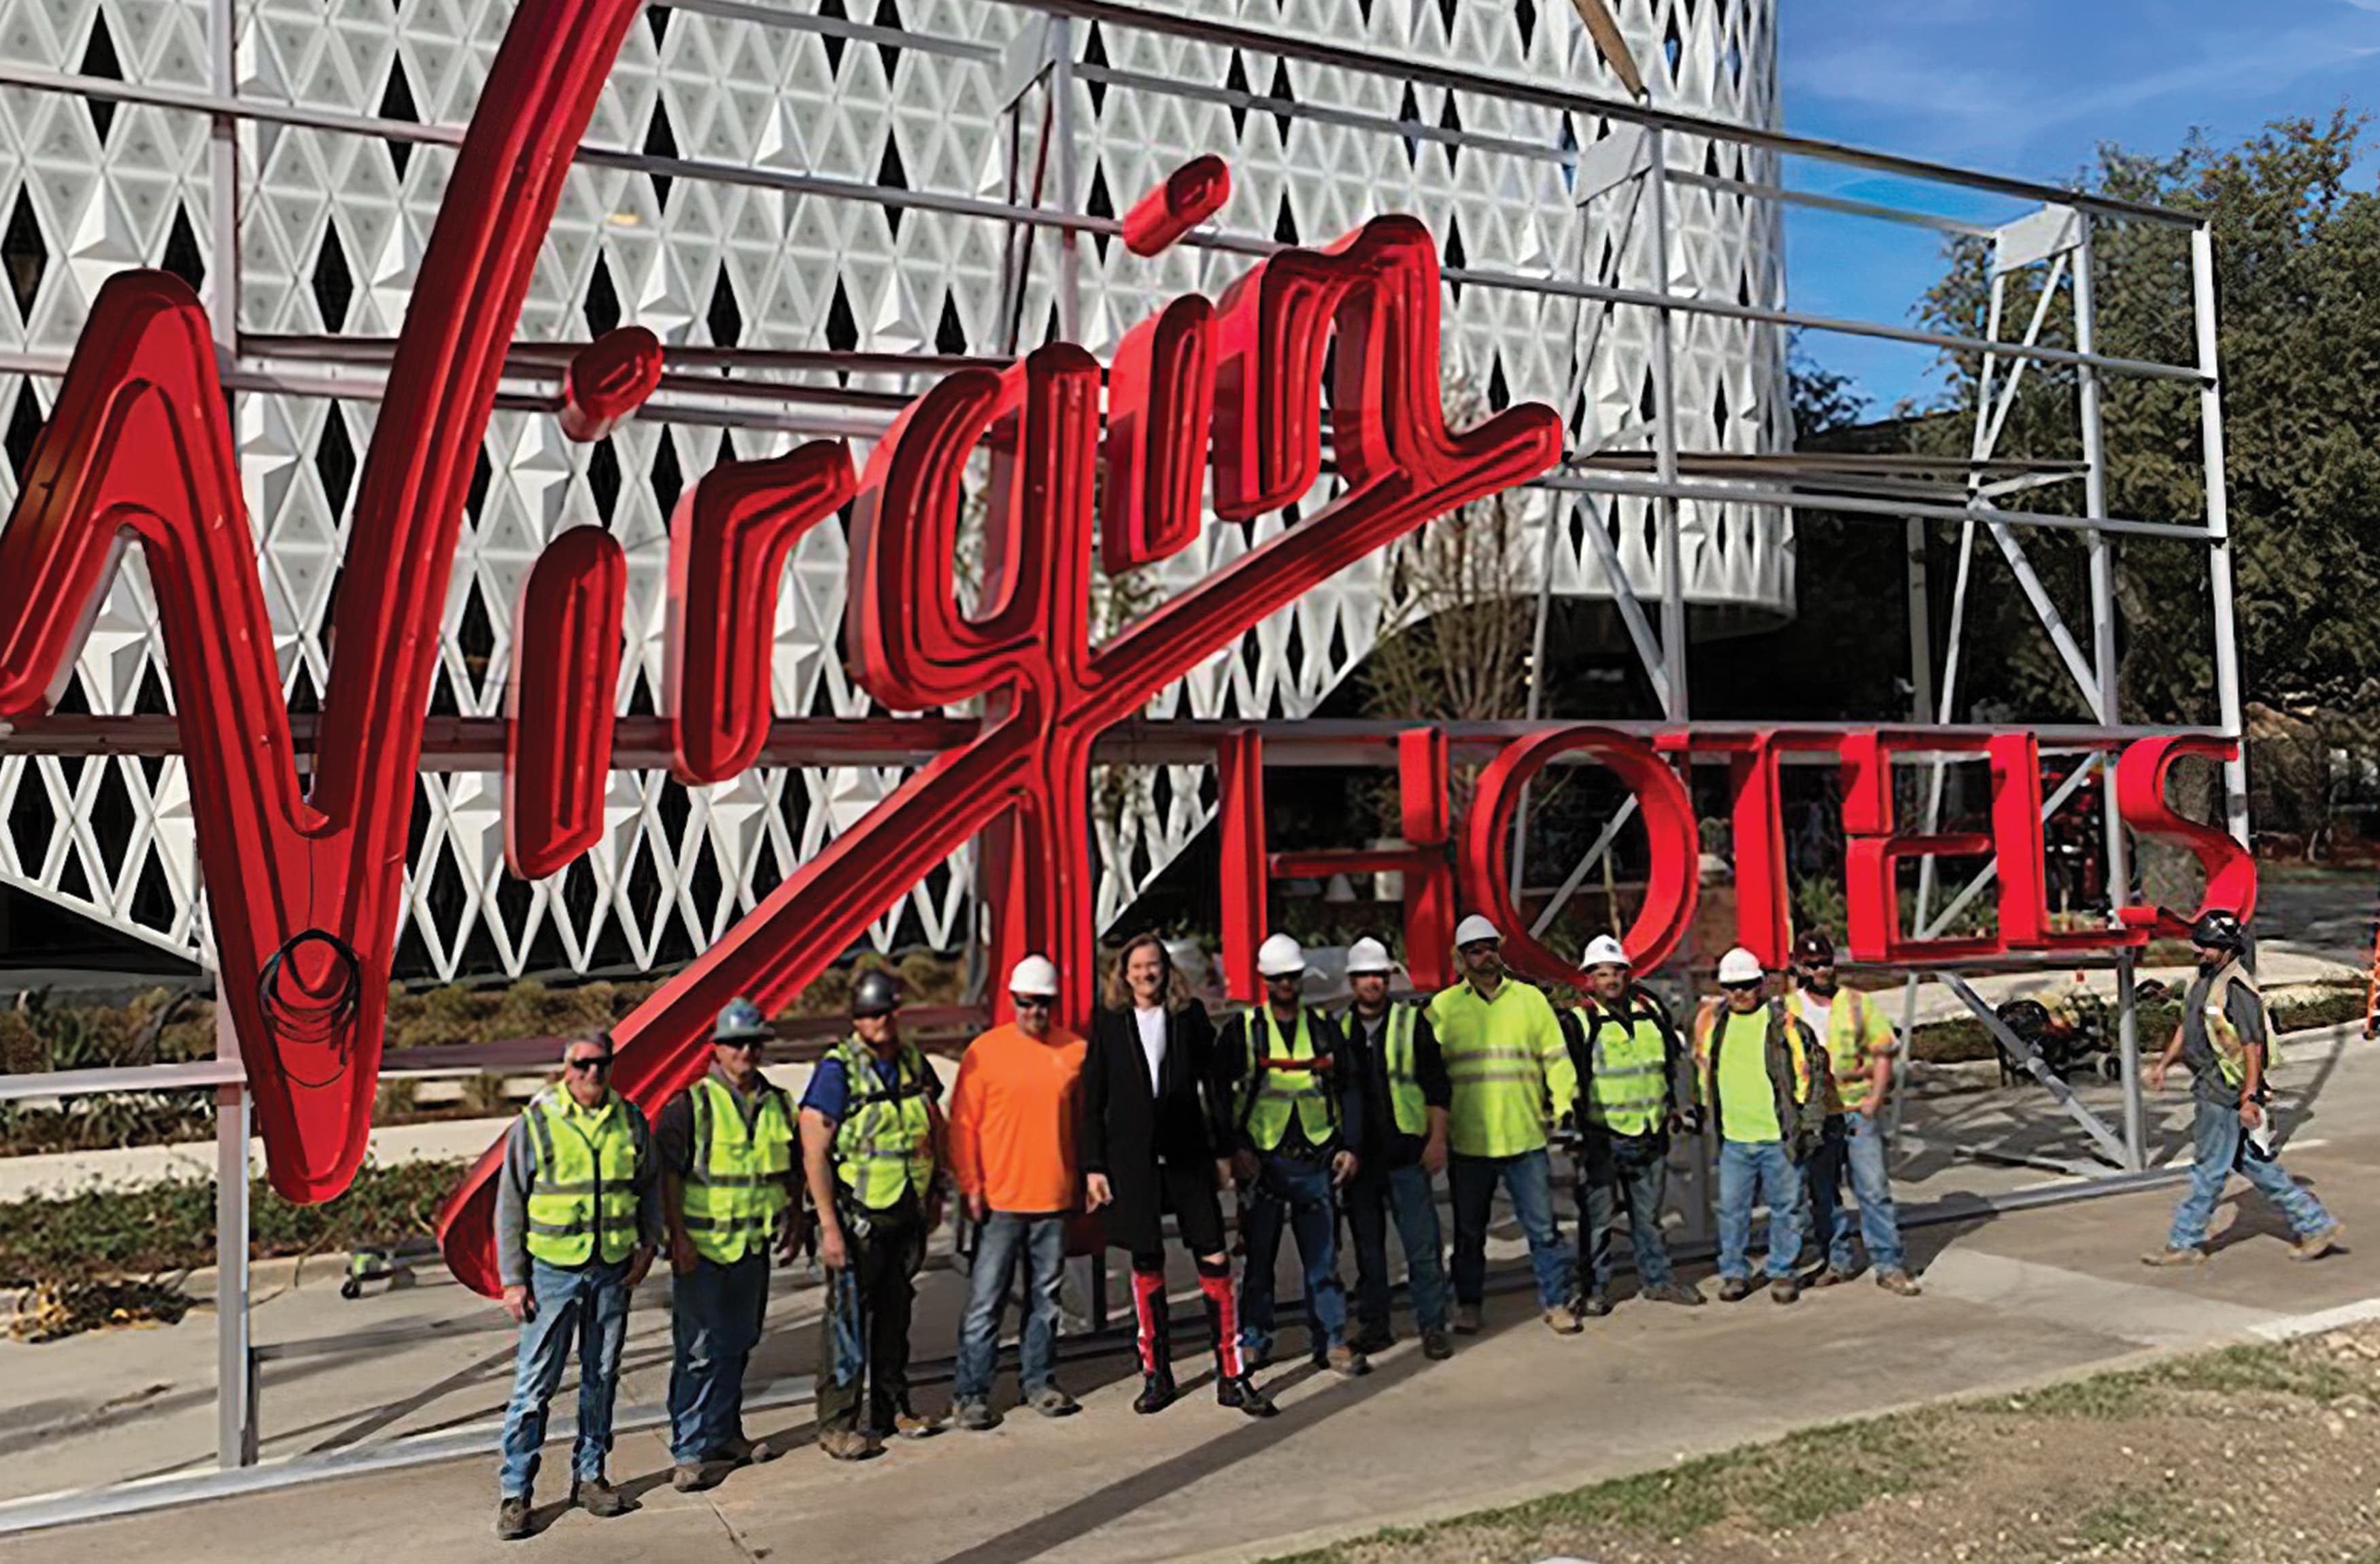 A photograph of a large fabricated sign for the new Virgin hotel featuring the installation team.